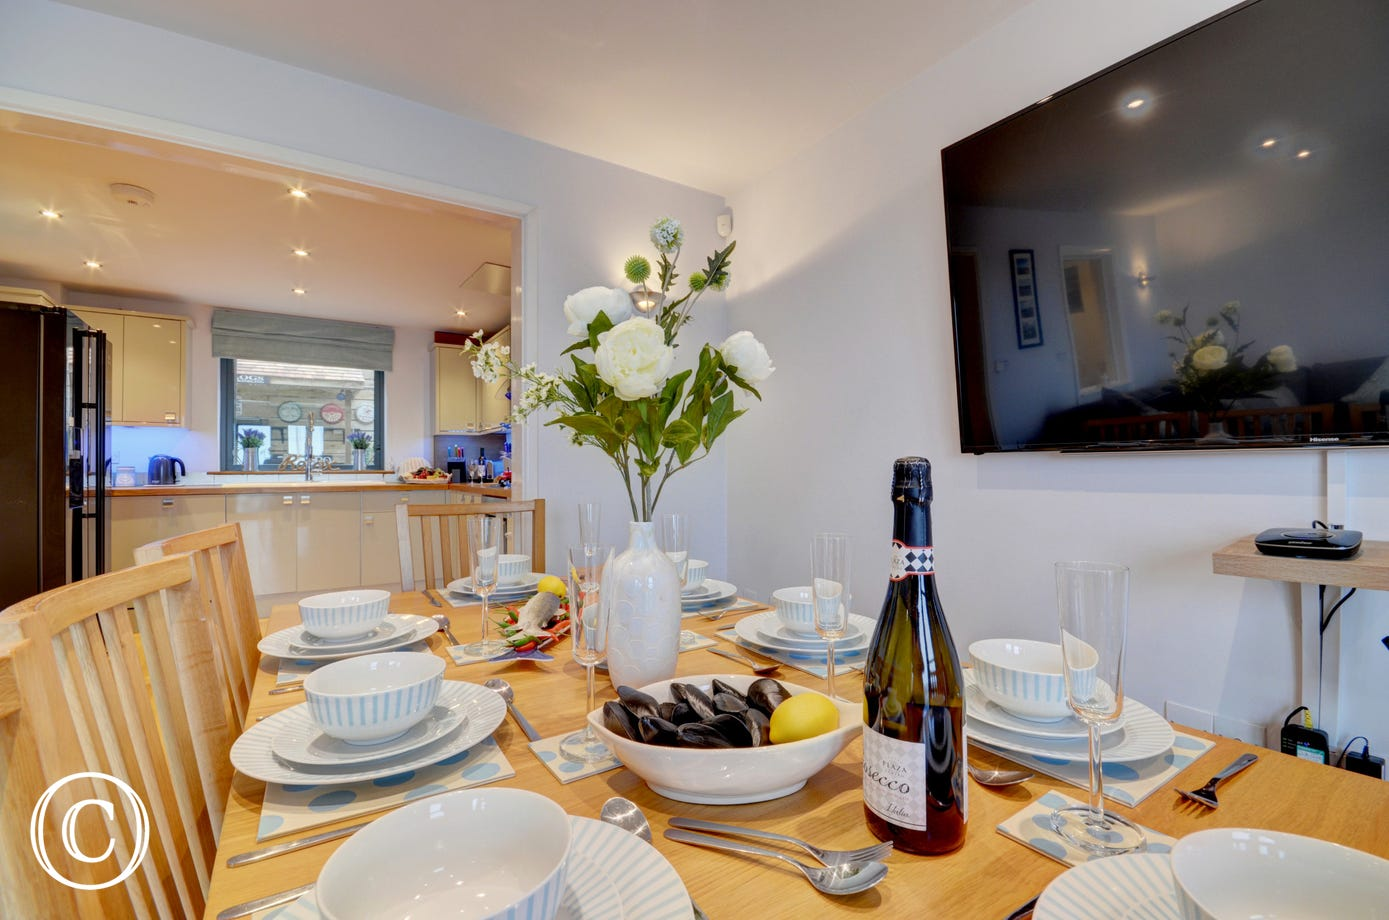 The dining area leads from the kitchen making entertaining a pleasure